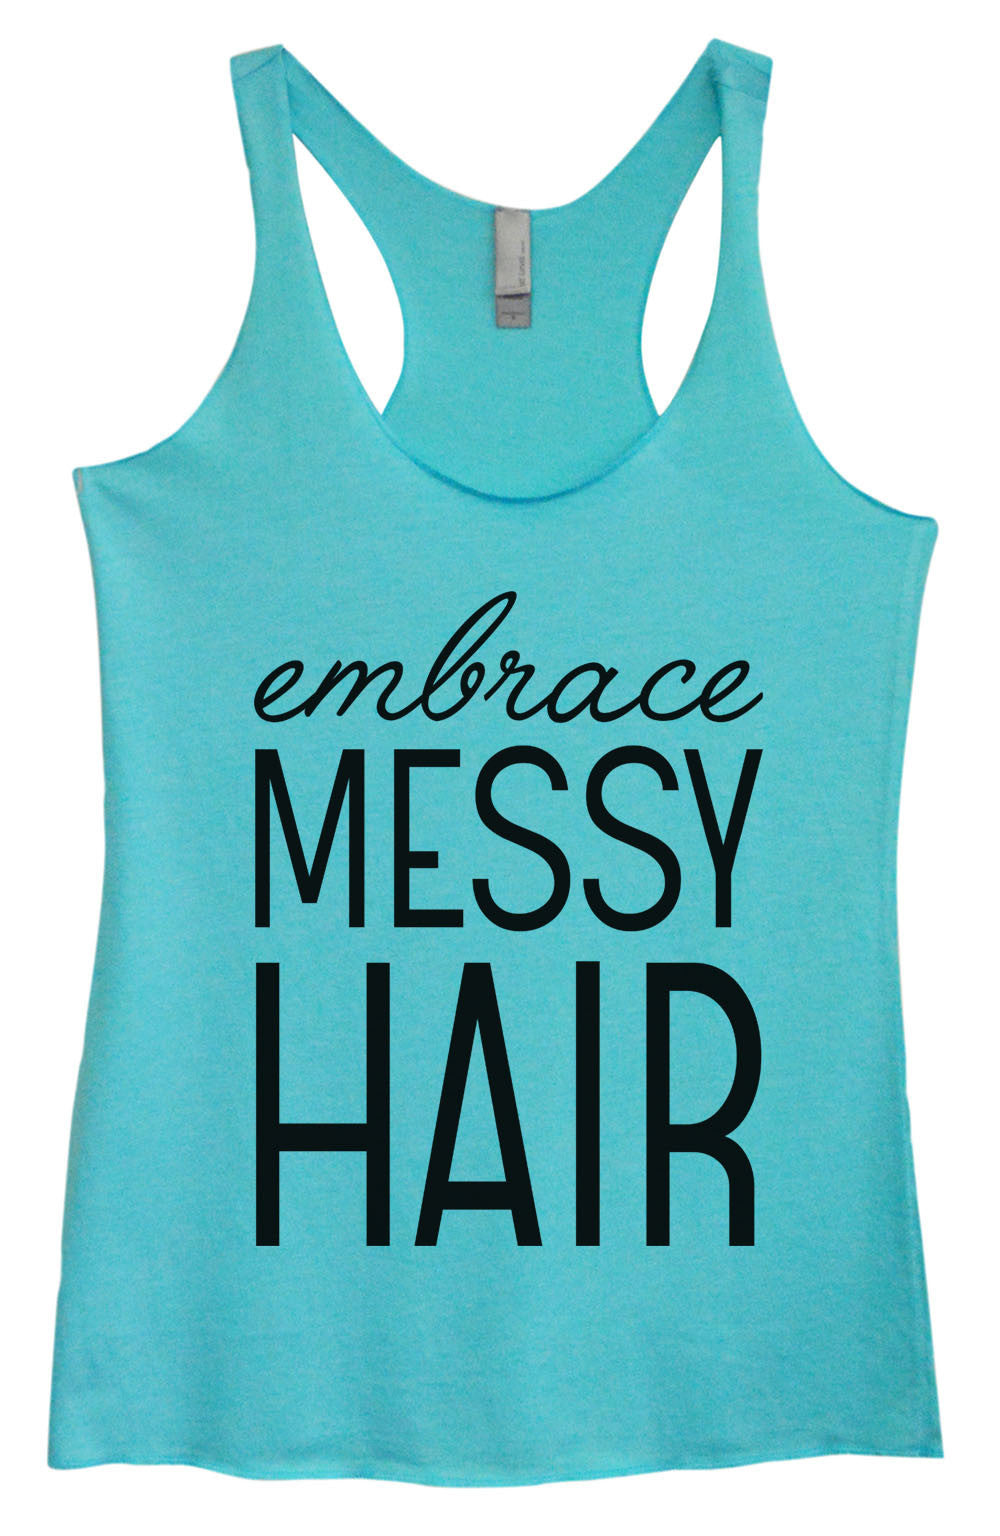 Womens Fashion Triblend Tank Top - Embrace Messy Hair - Tri-940 - Funny Shirts Tank Tops Burnouts and Triblends  - 3